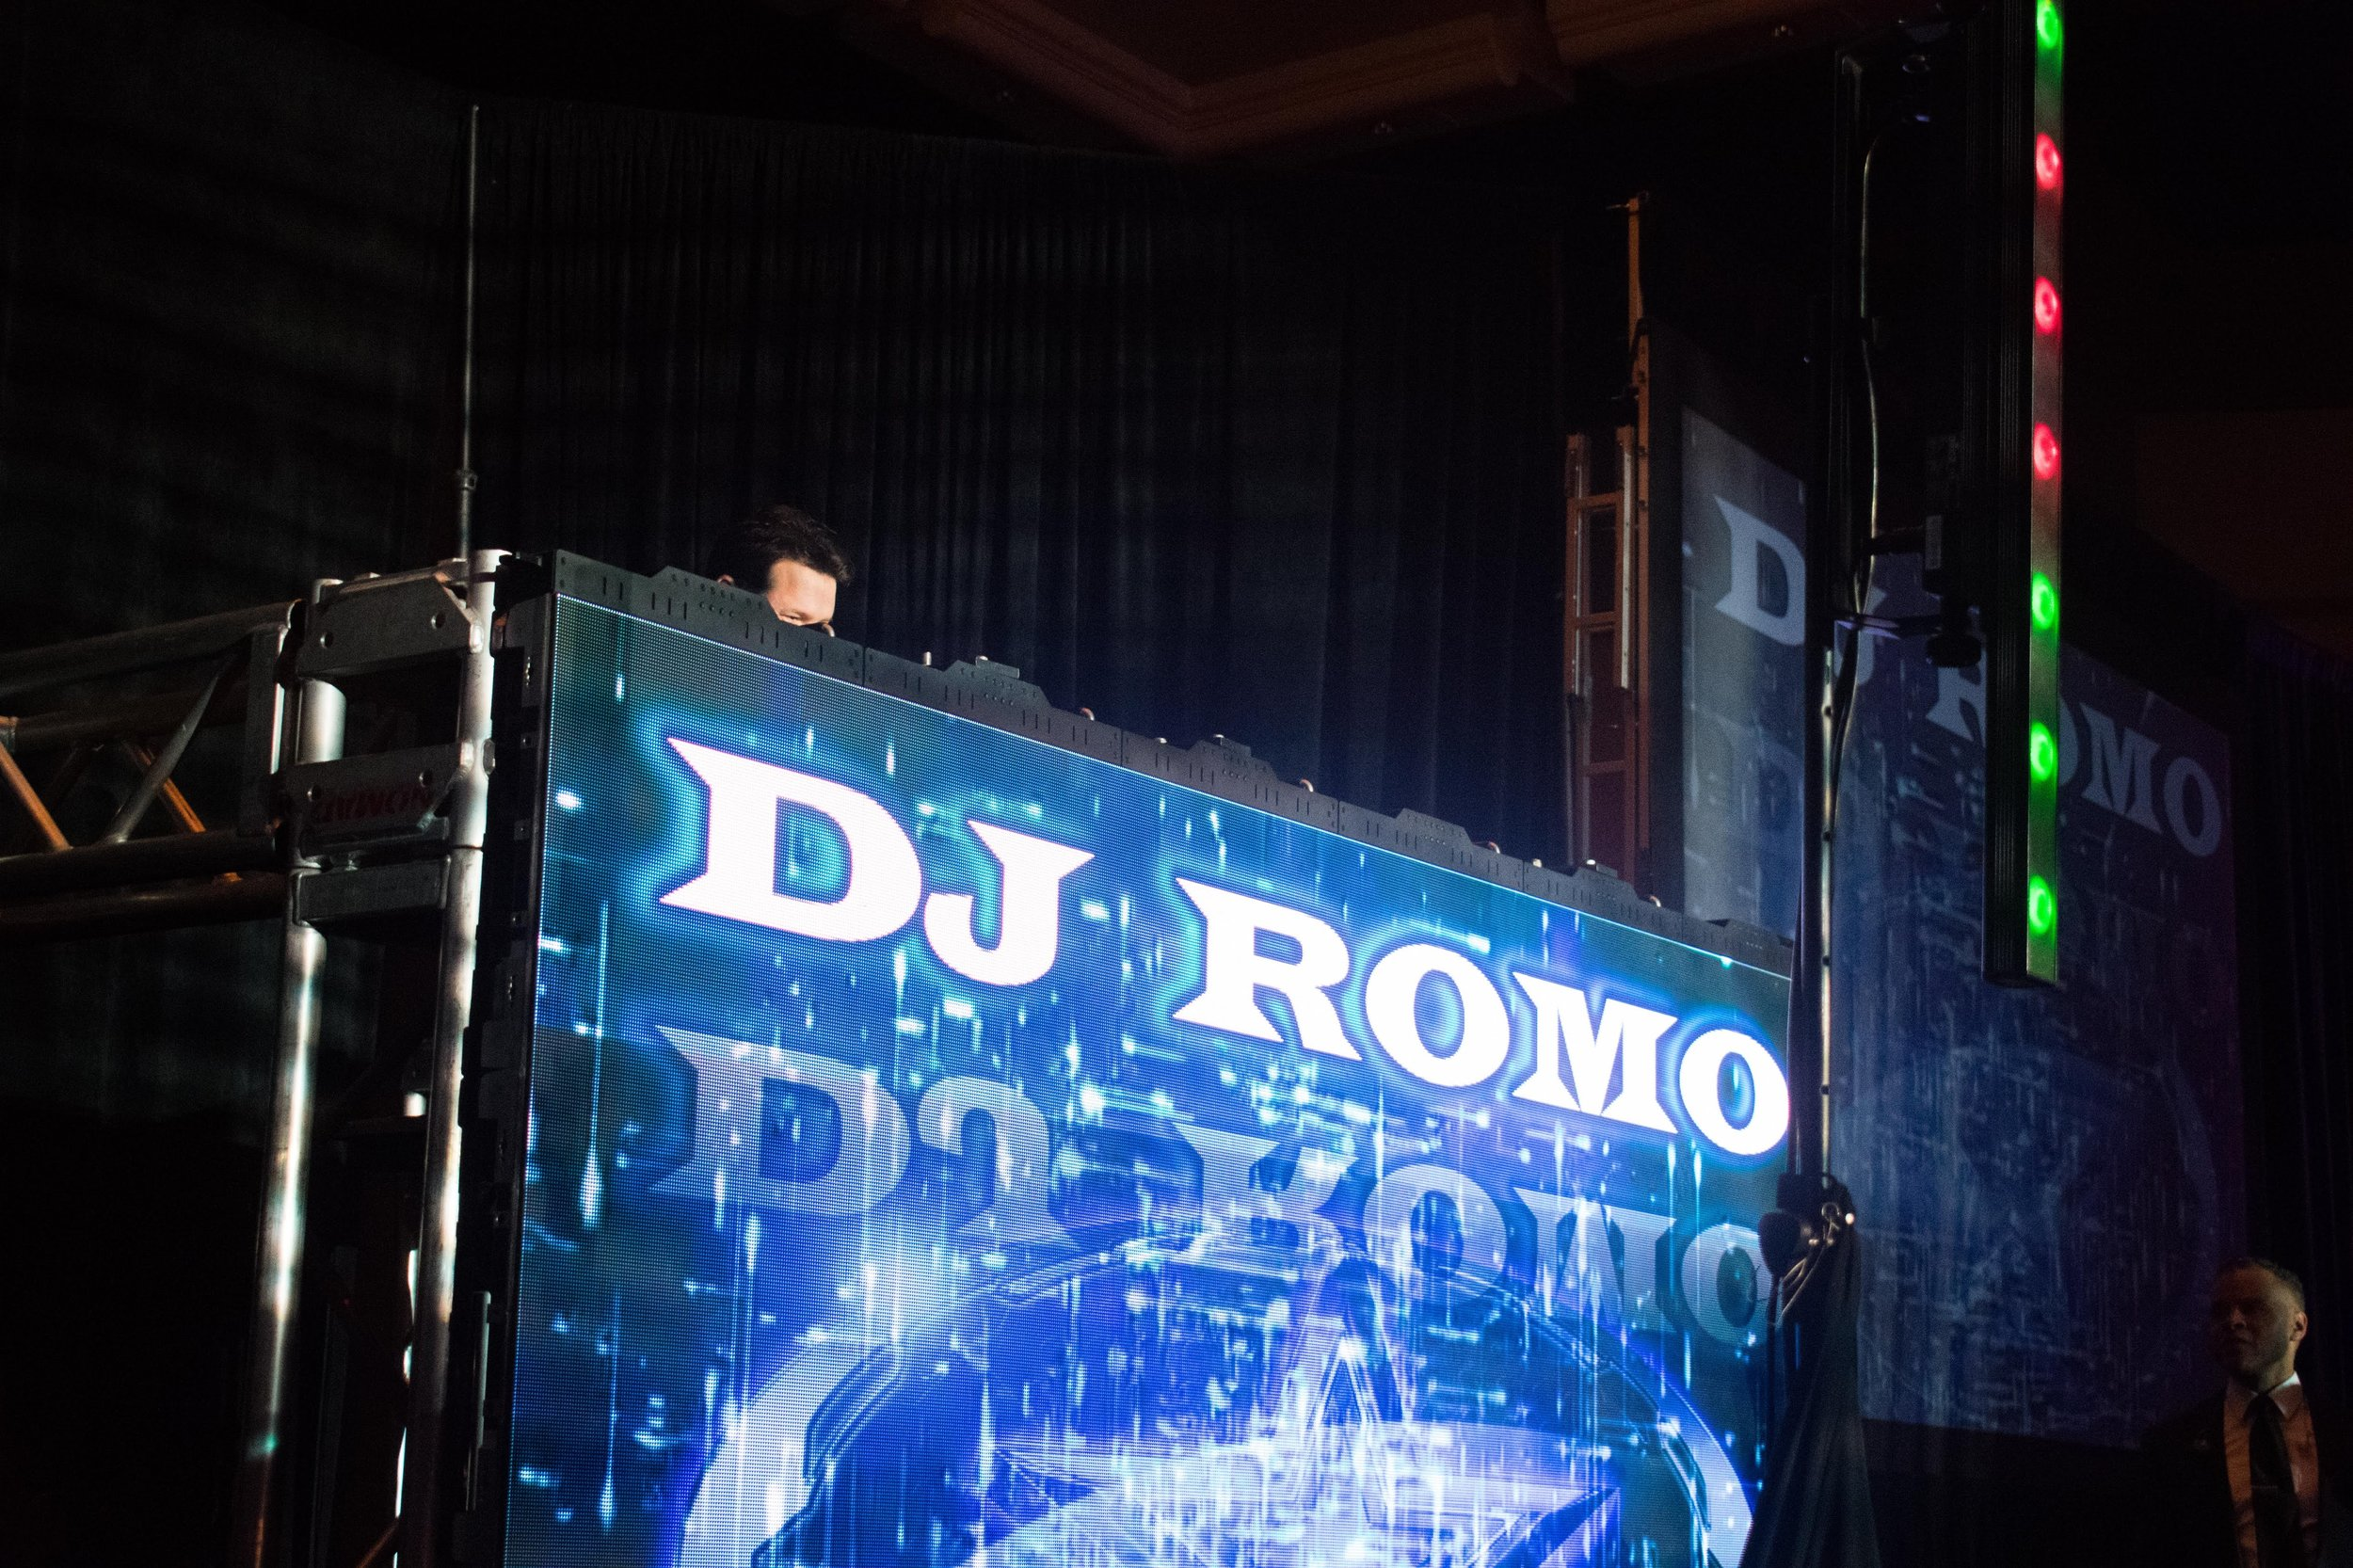 Make Your Life Sweeter Events - Children's Cancer Fund Gala - DJ Tony Romo